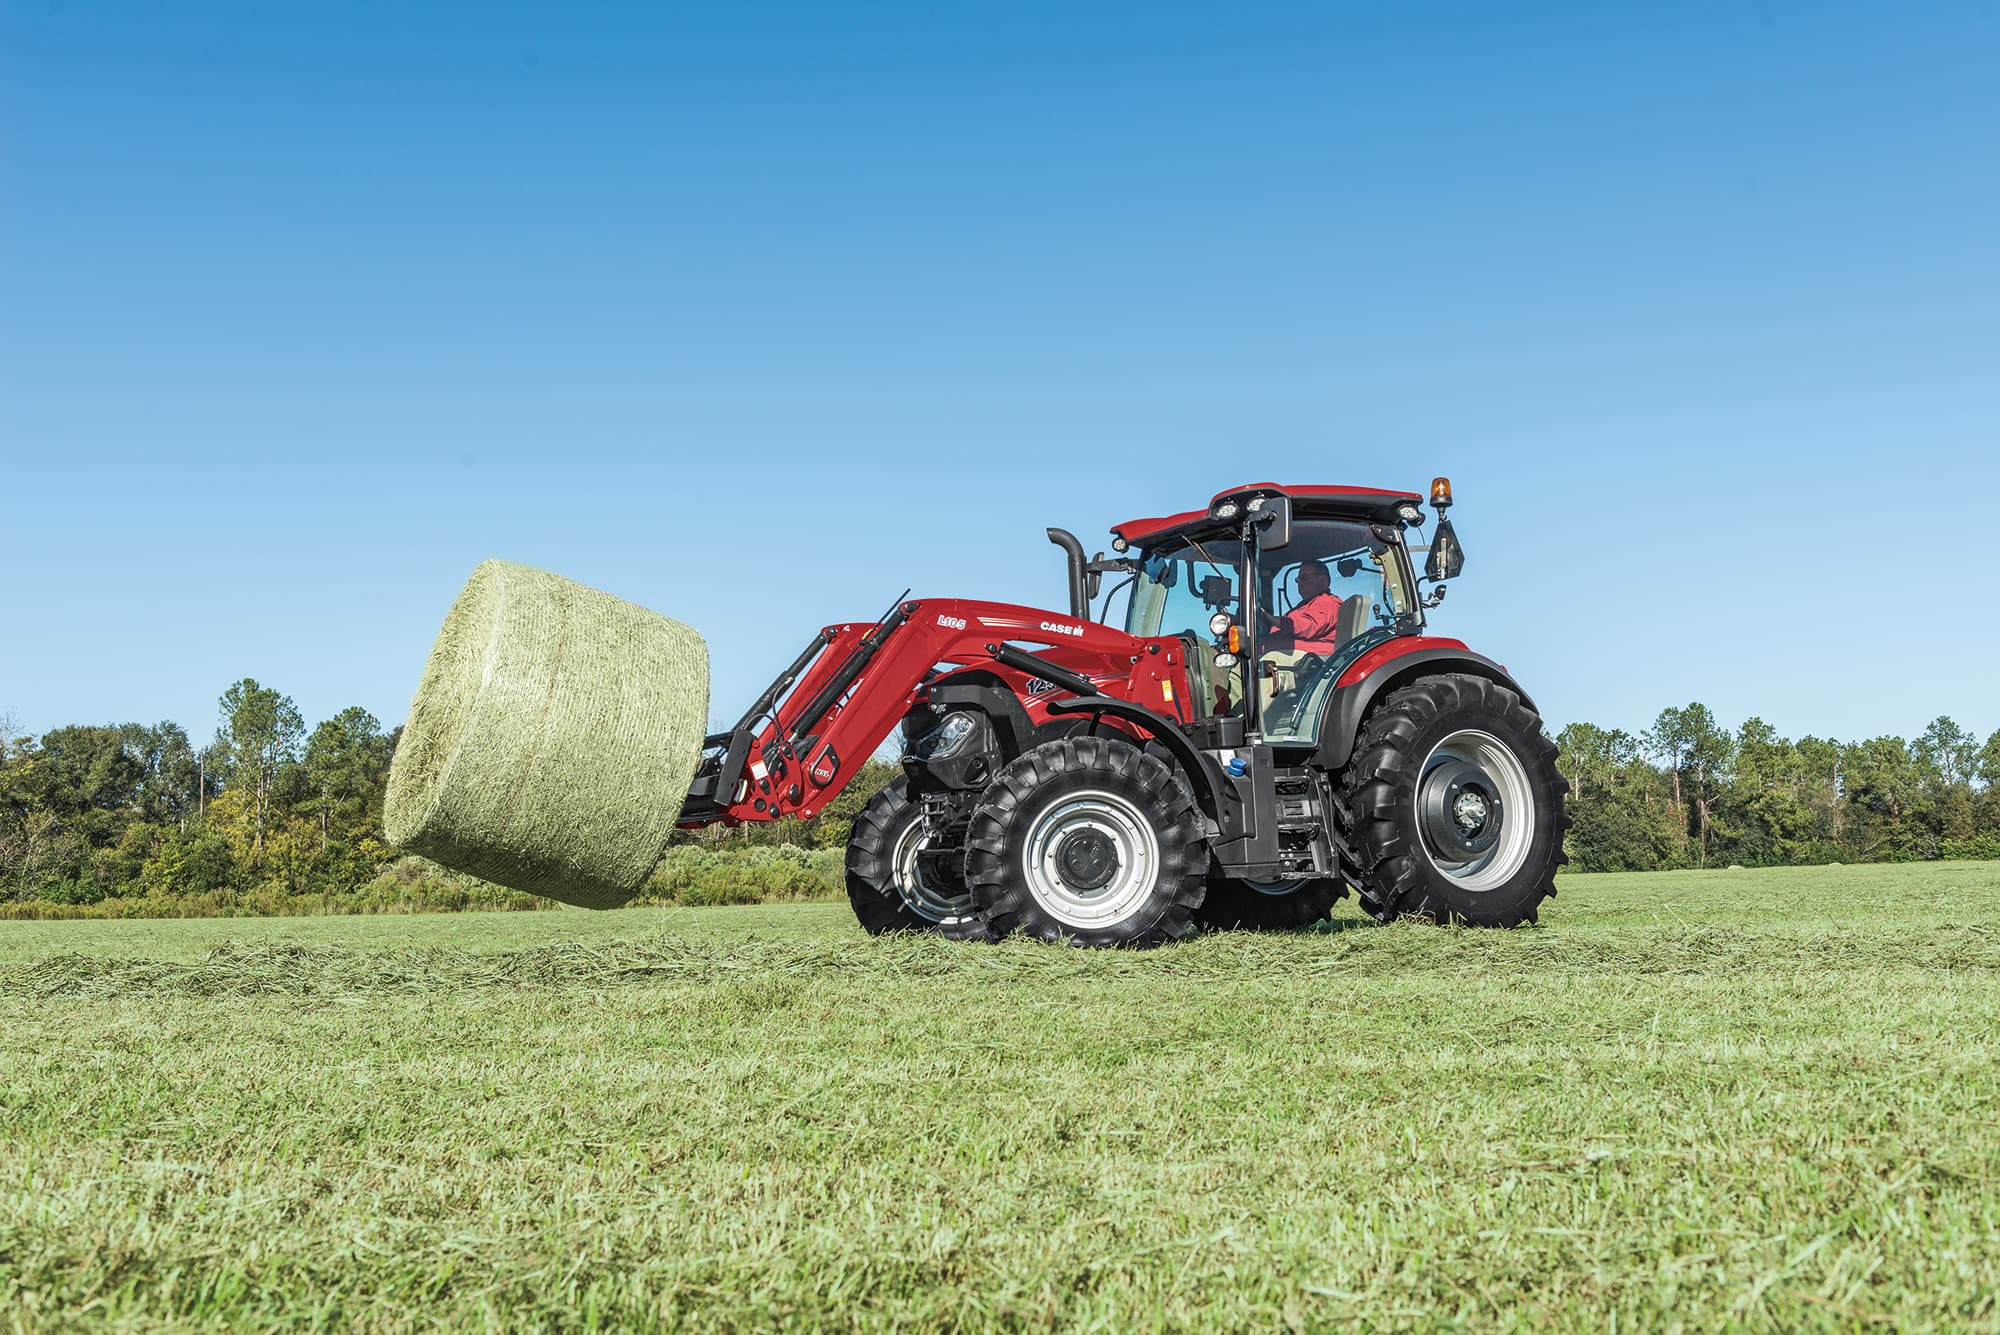 Maxxum 125_1687_10 17?width=620&height=310 loaders & attachments tractors & planters case ih